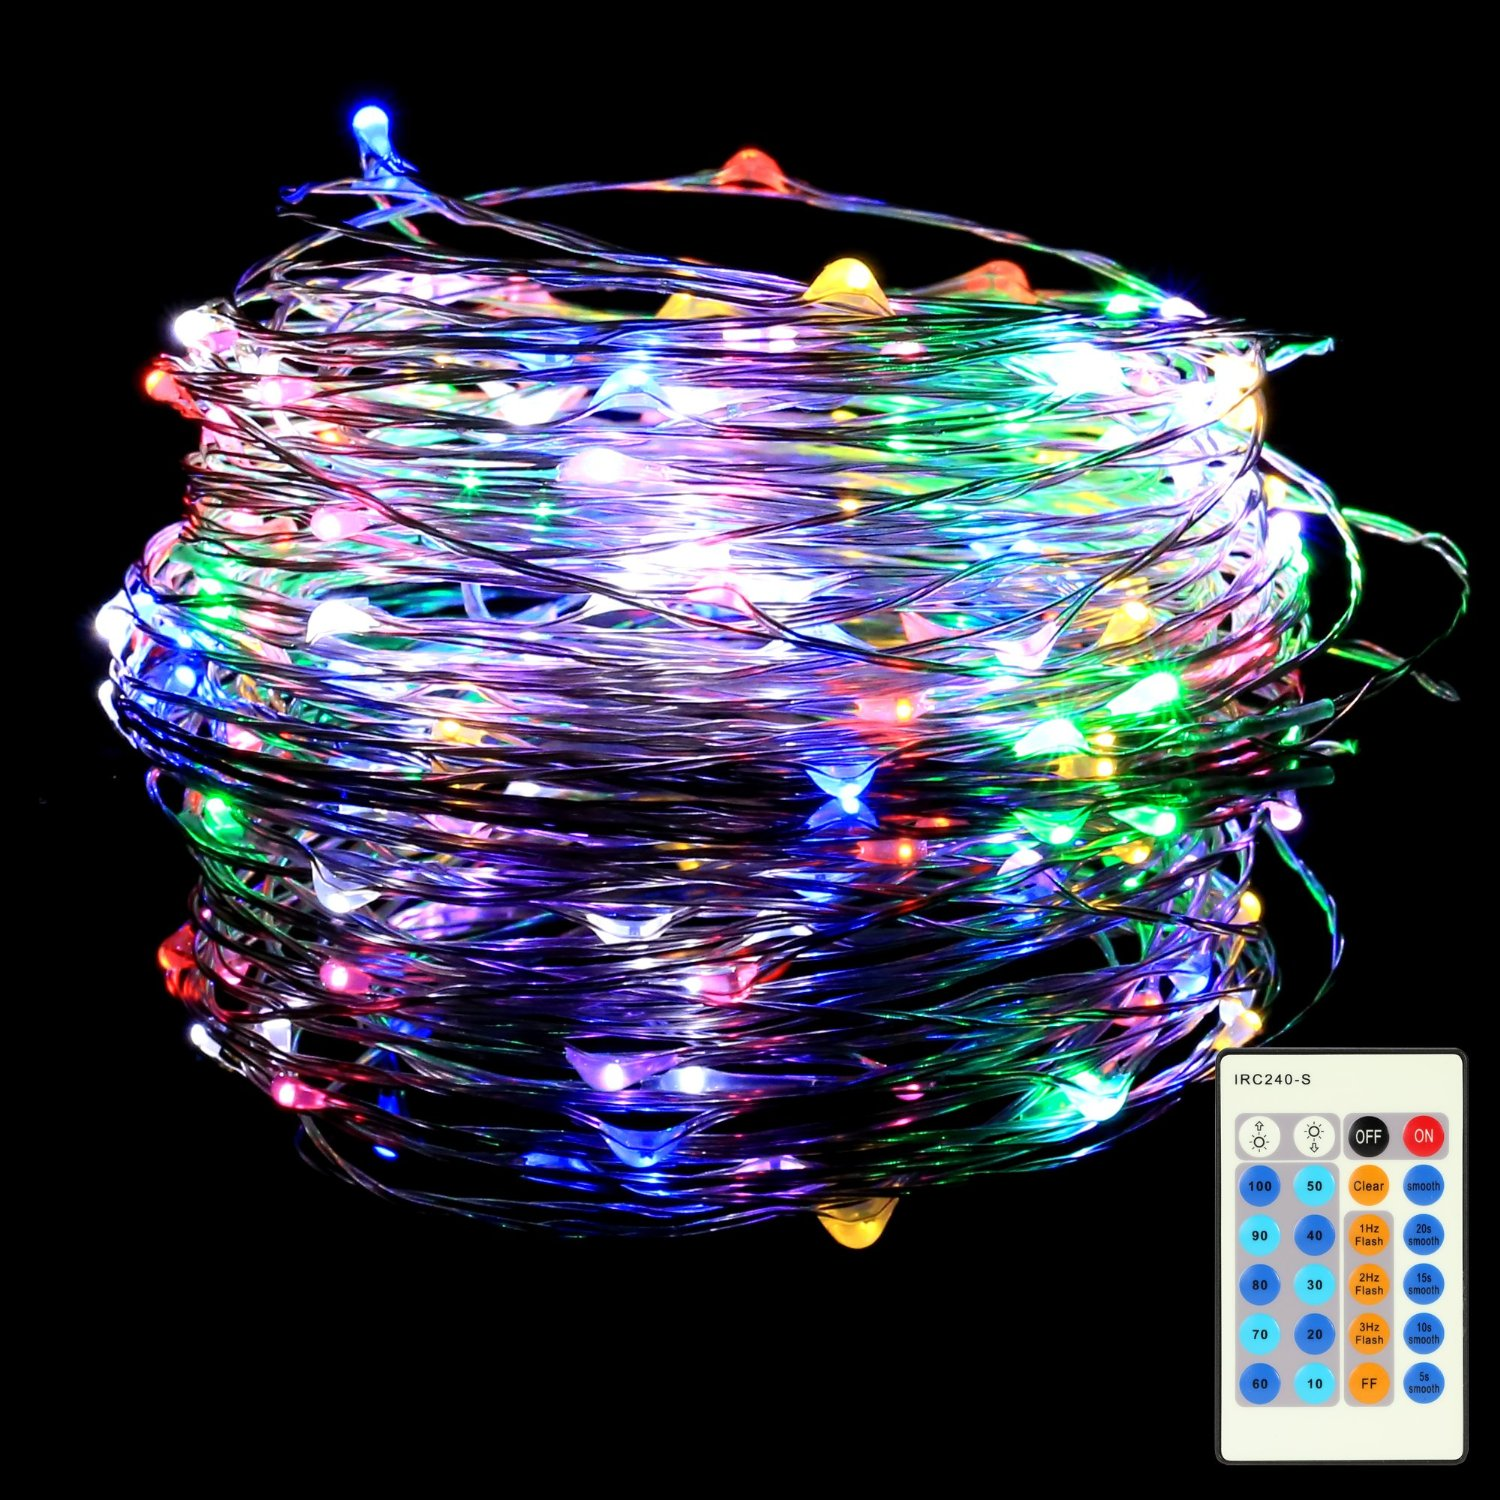 Led String Lights Dimmable : CHRISTMAS GIVES HAPPINESS WHILE RECEIVING GIFTS!!! - FIND YOUR FUTURE